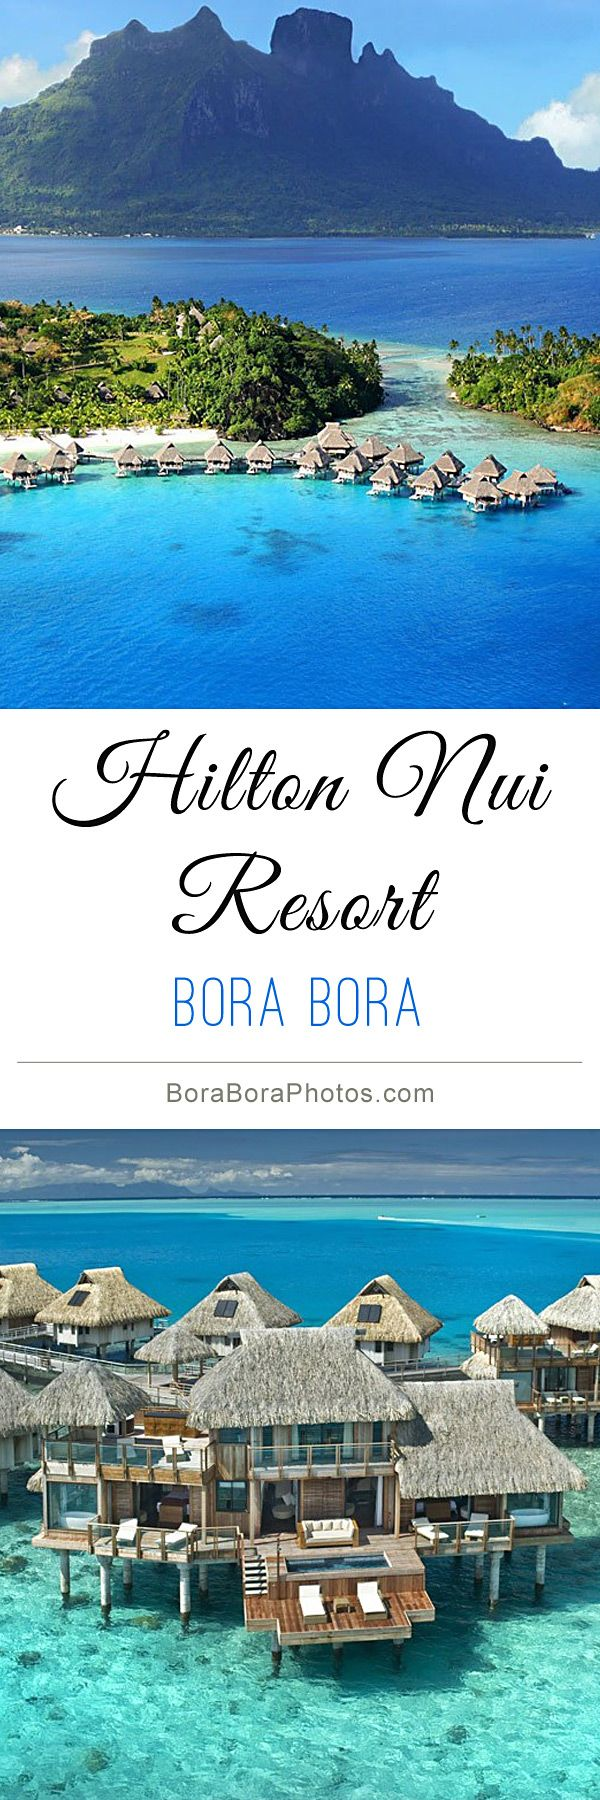 Best 25+ Bora bora resorts ideas only on Pinterest | Bora ...